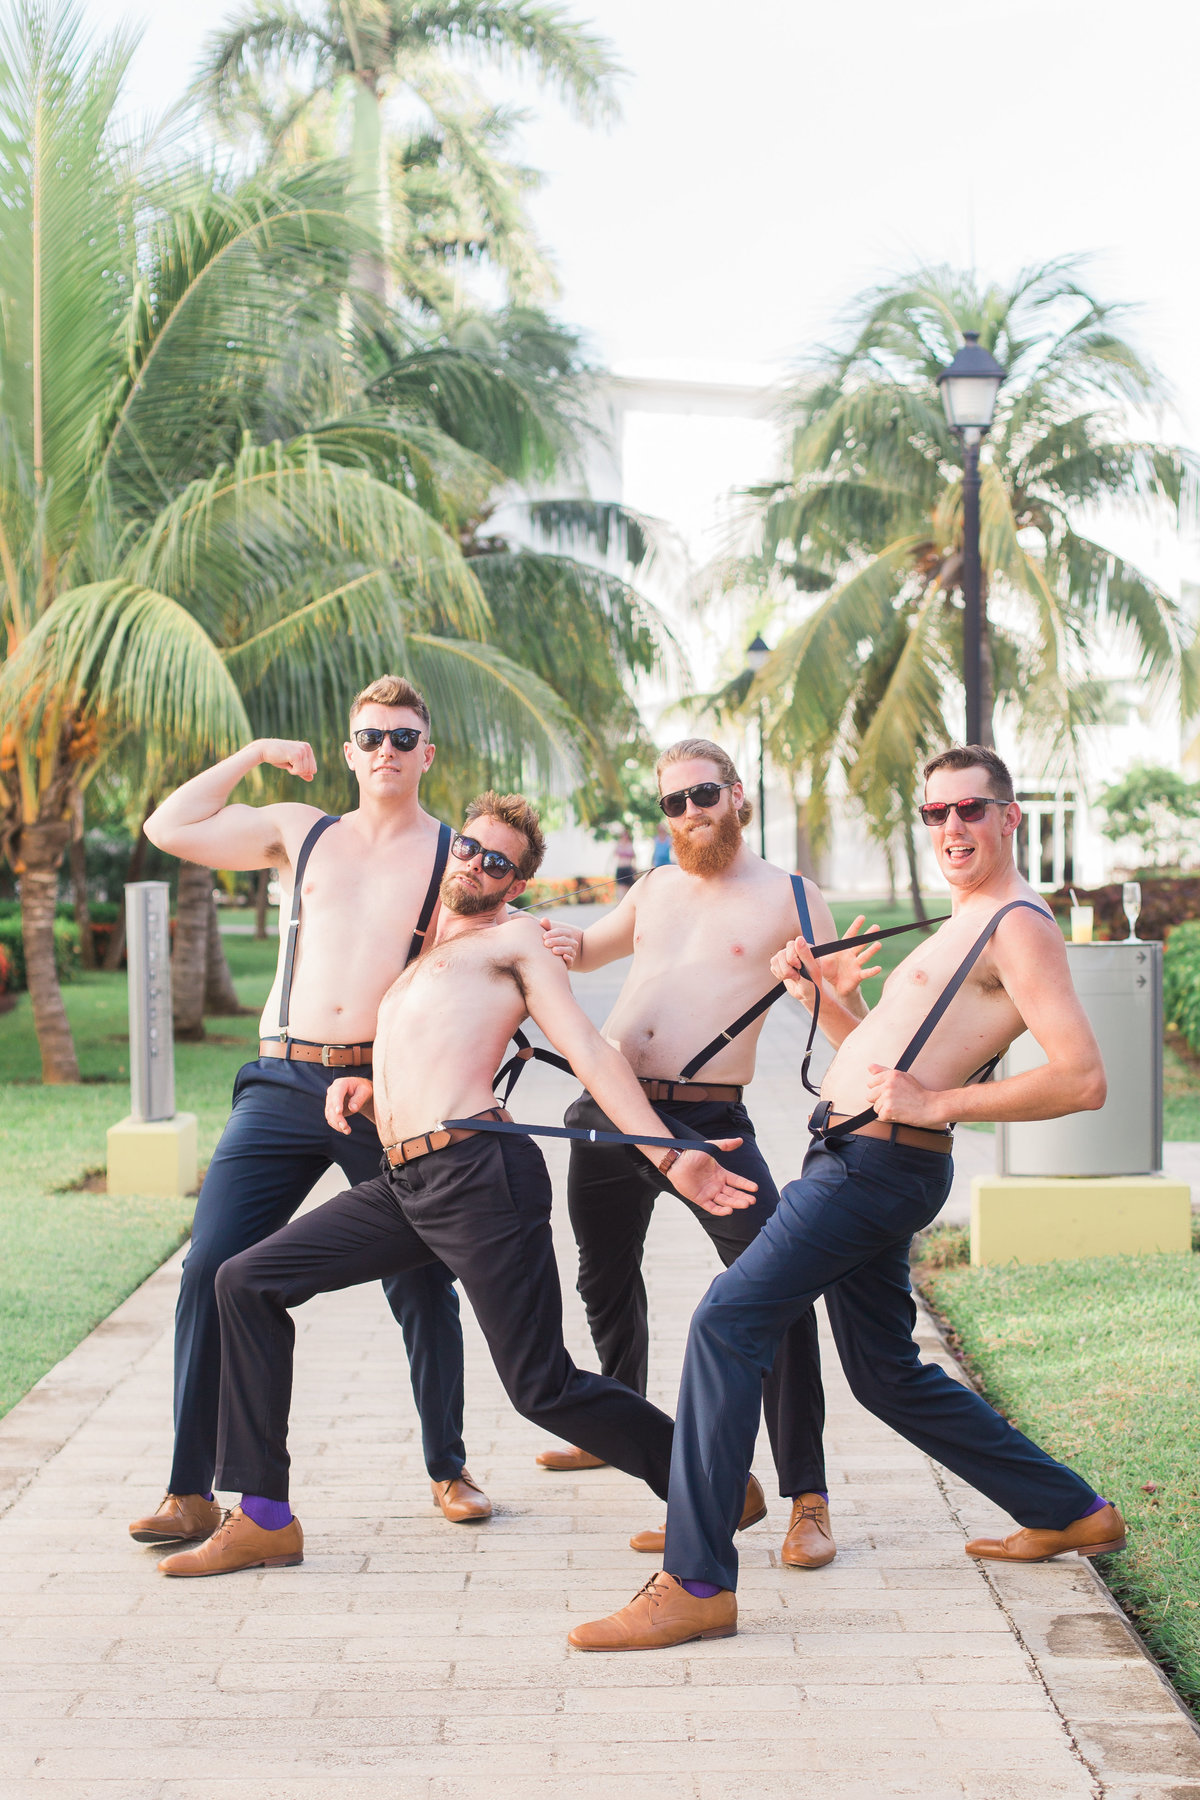 groom and groomsmen with no shirts on